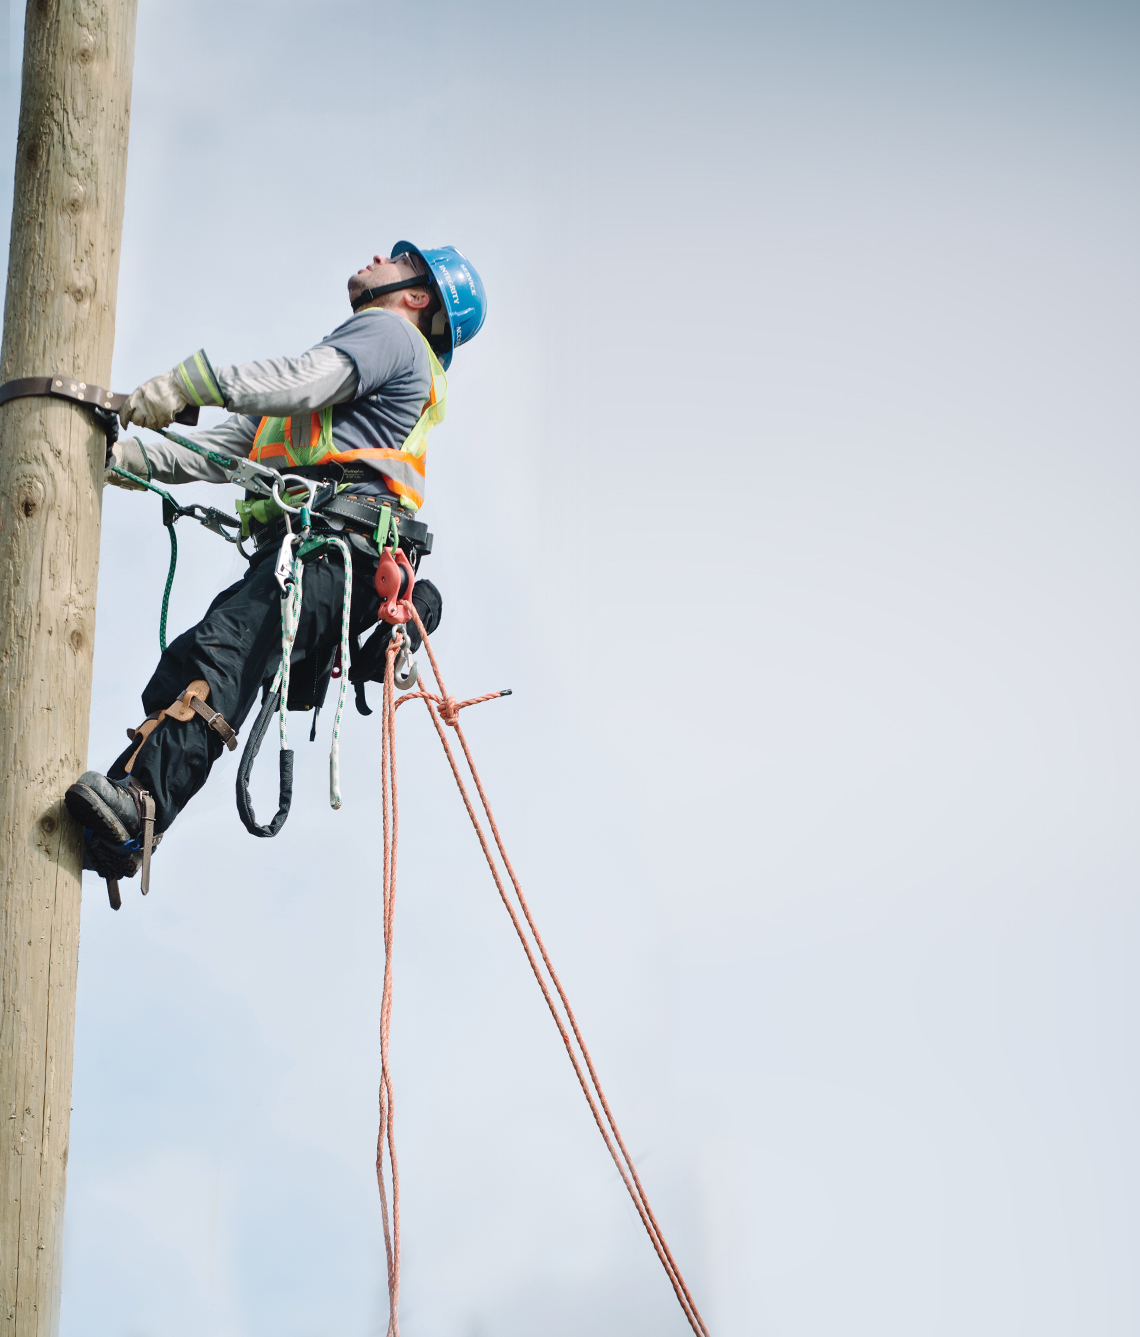 Train for a career as a power line technician